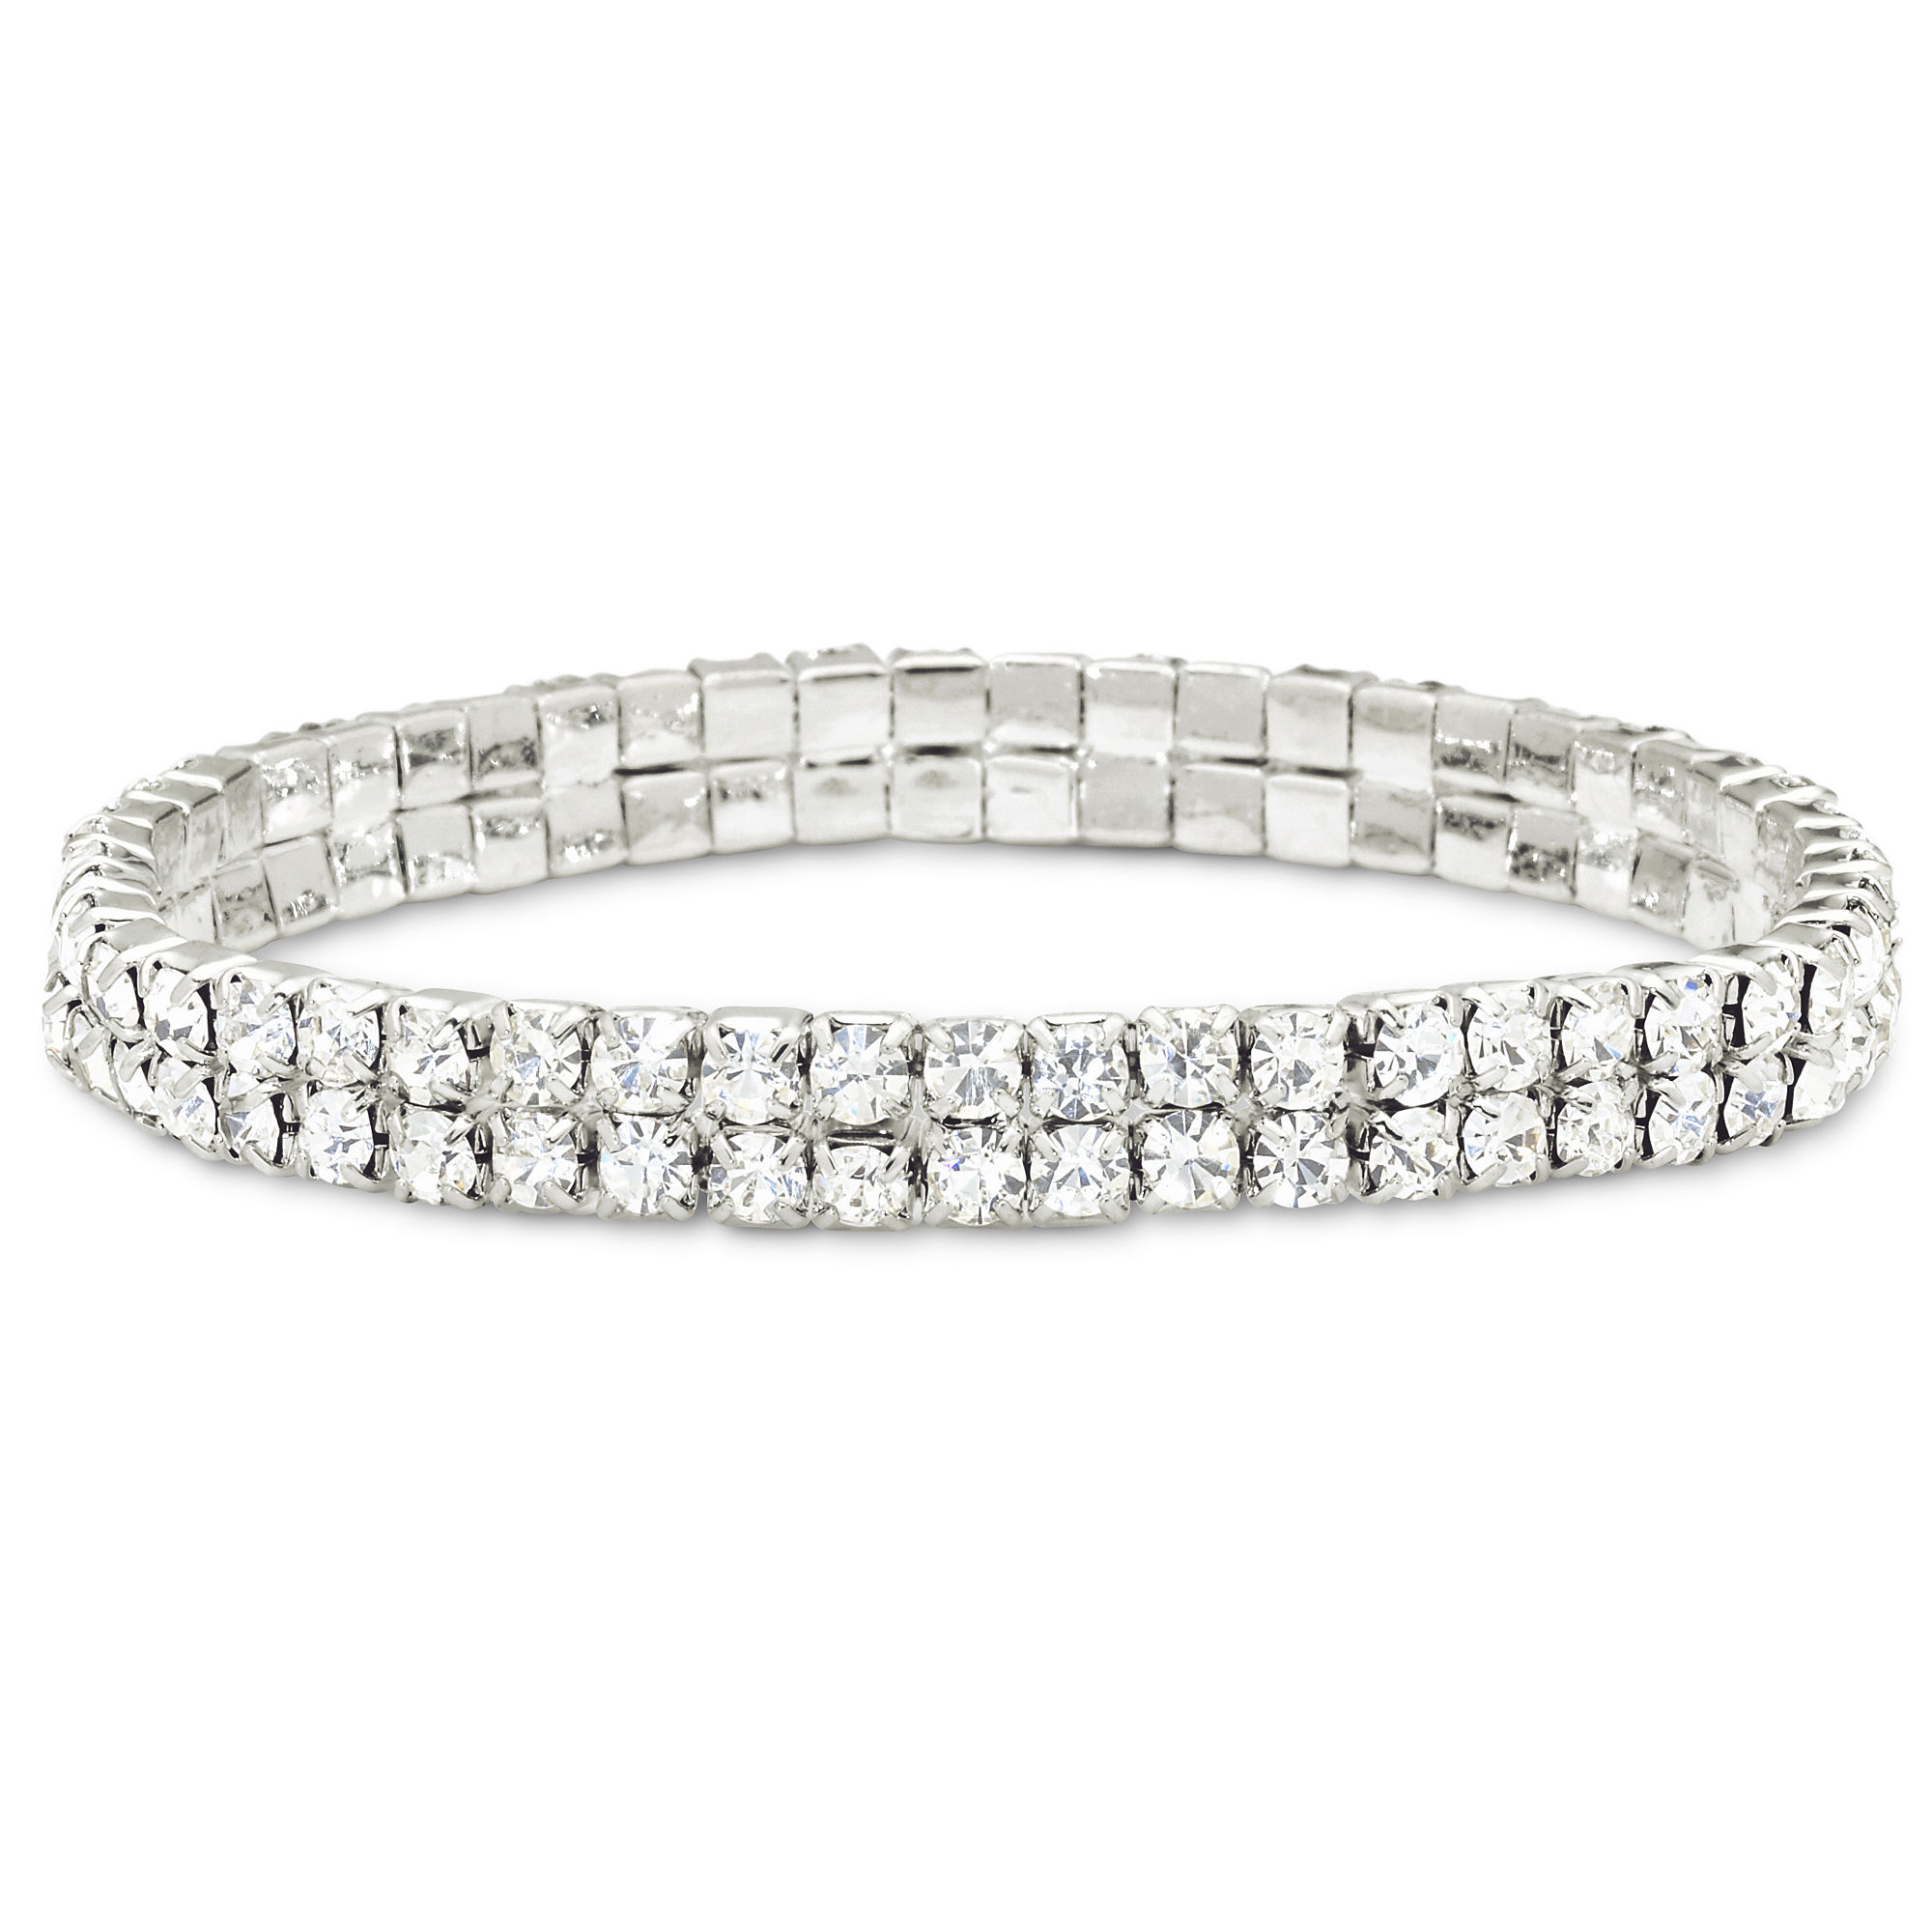 Vieste Crystal Stretch Bracelet